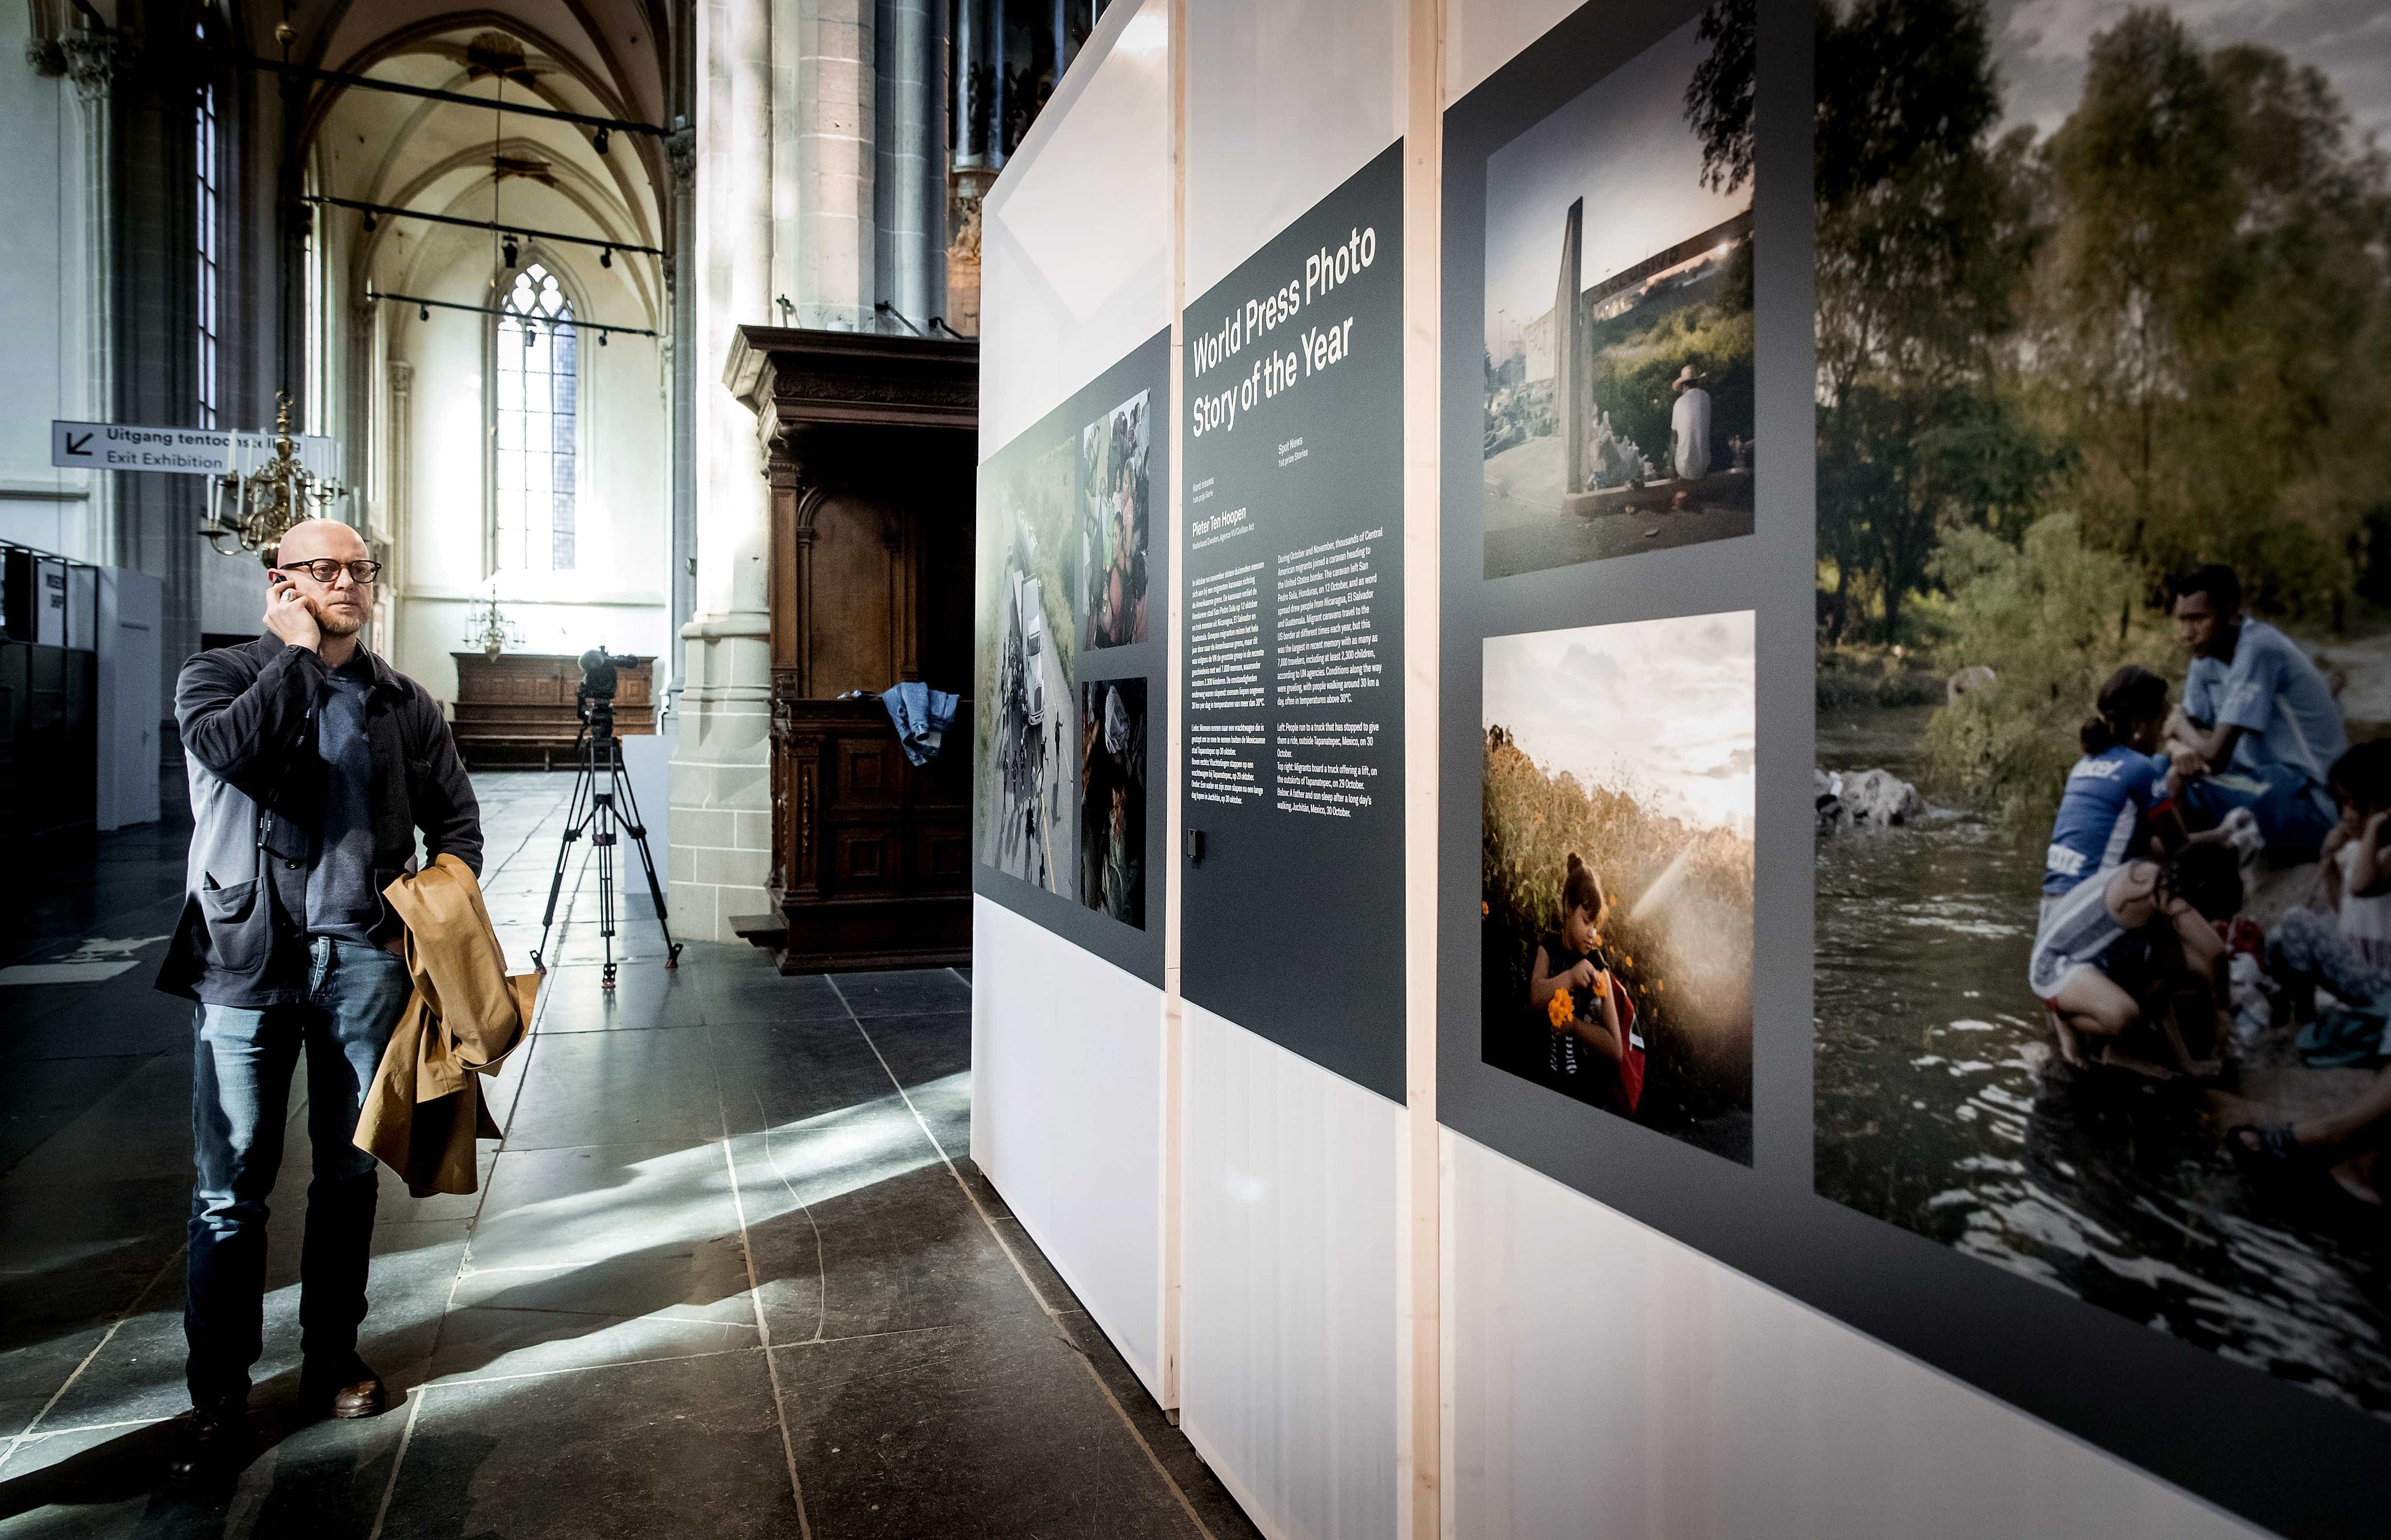 World Press Photo é hoje inaugurada no Museu de História Natural